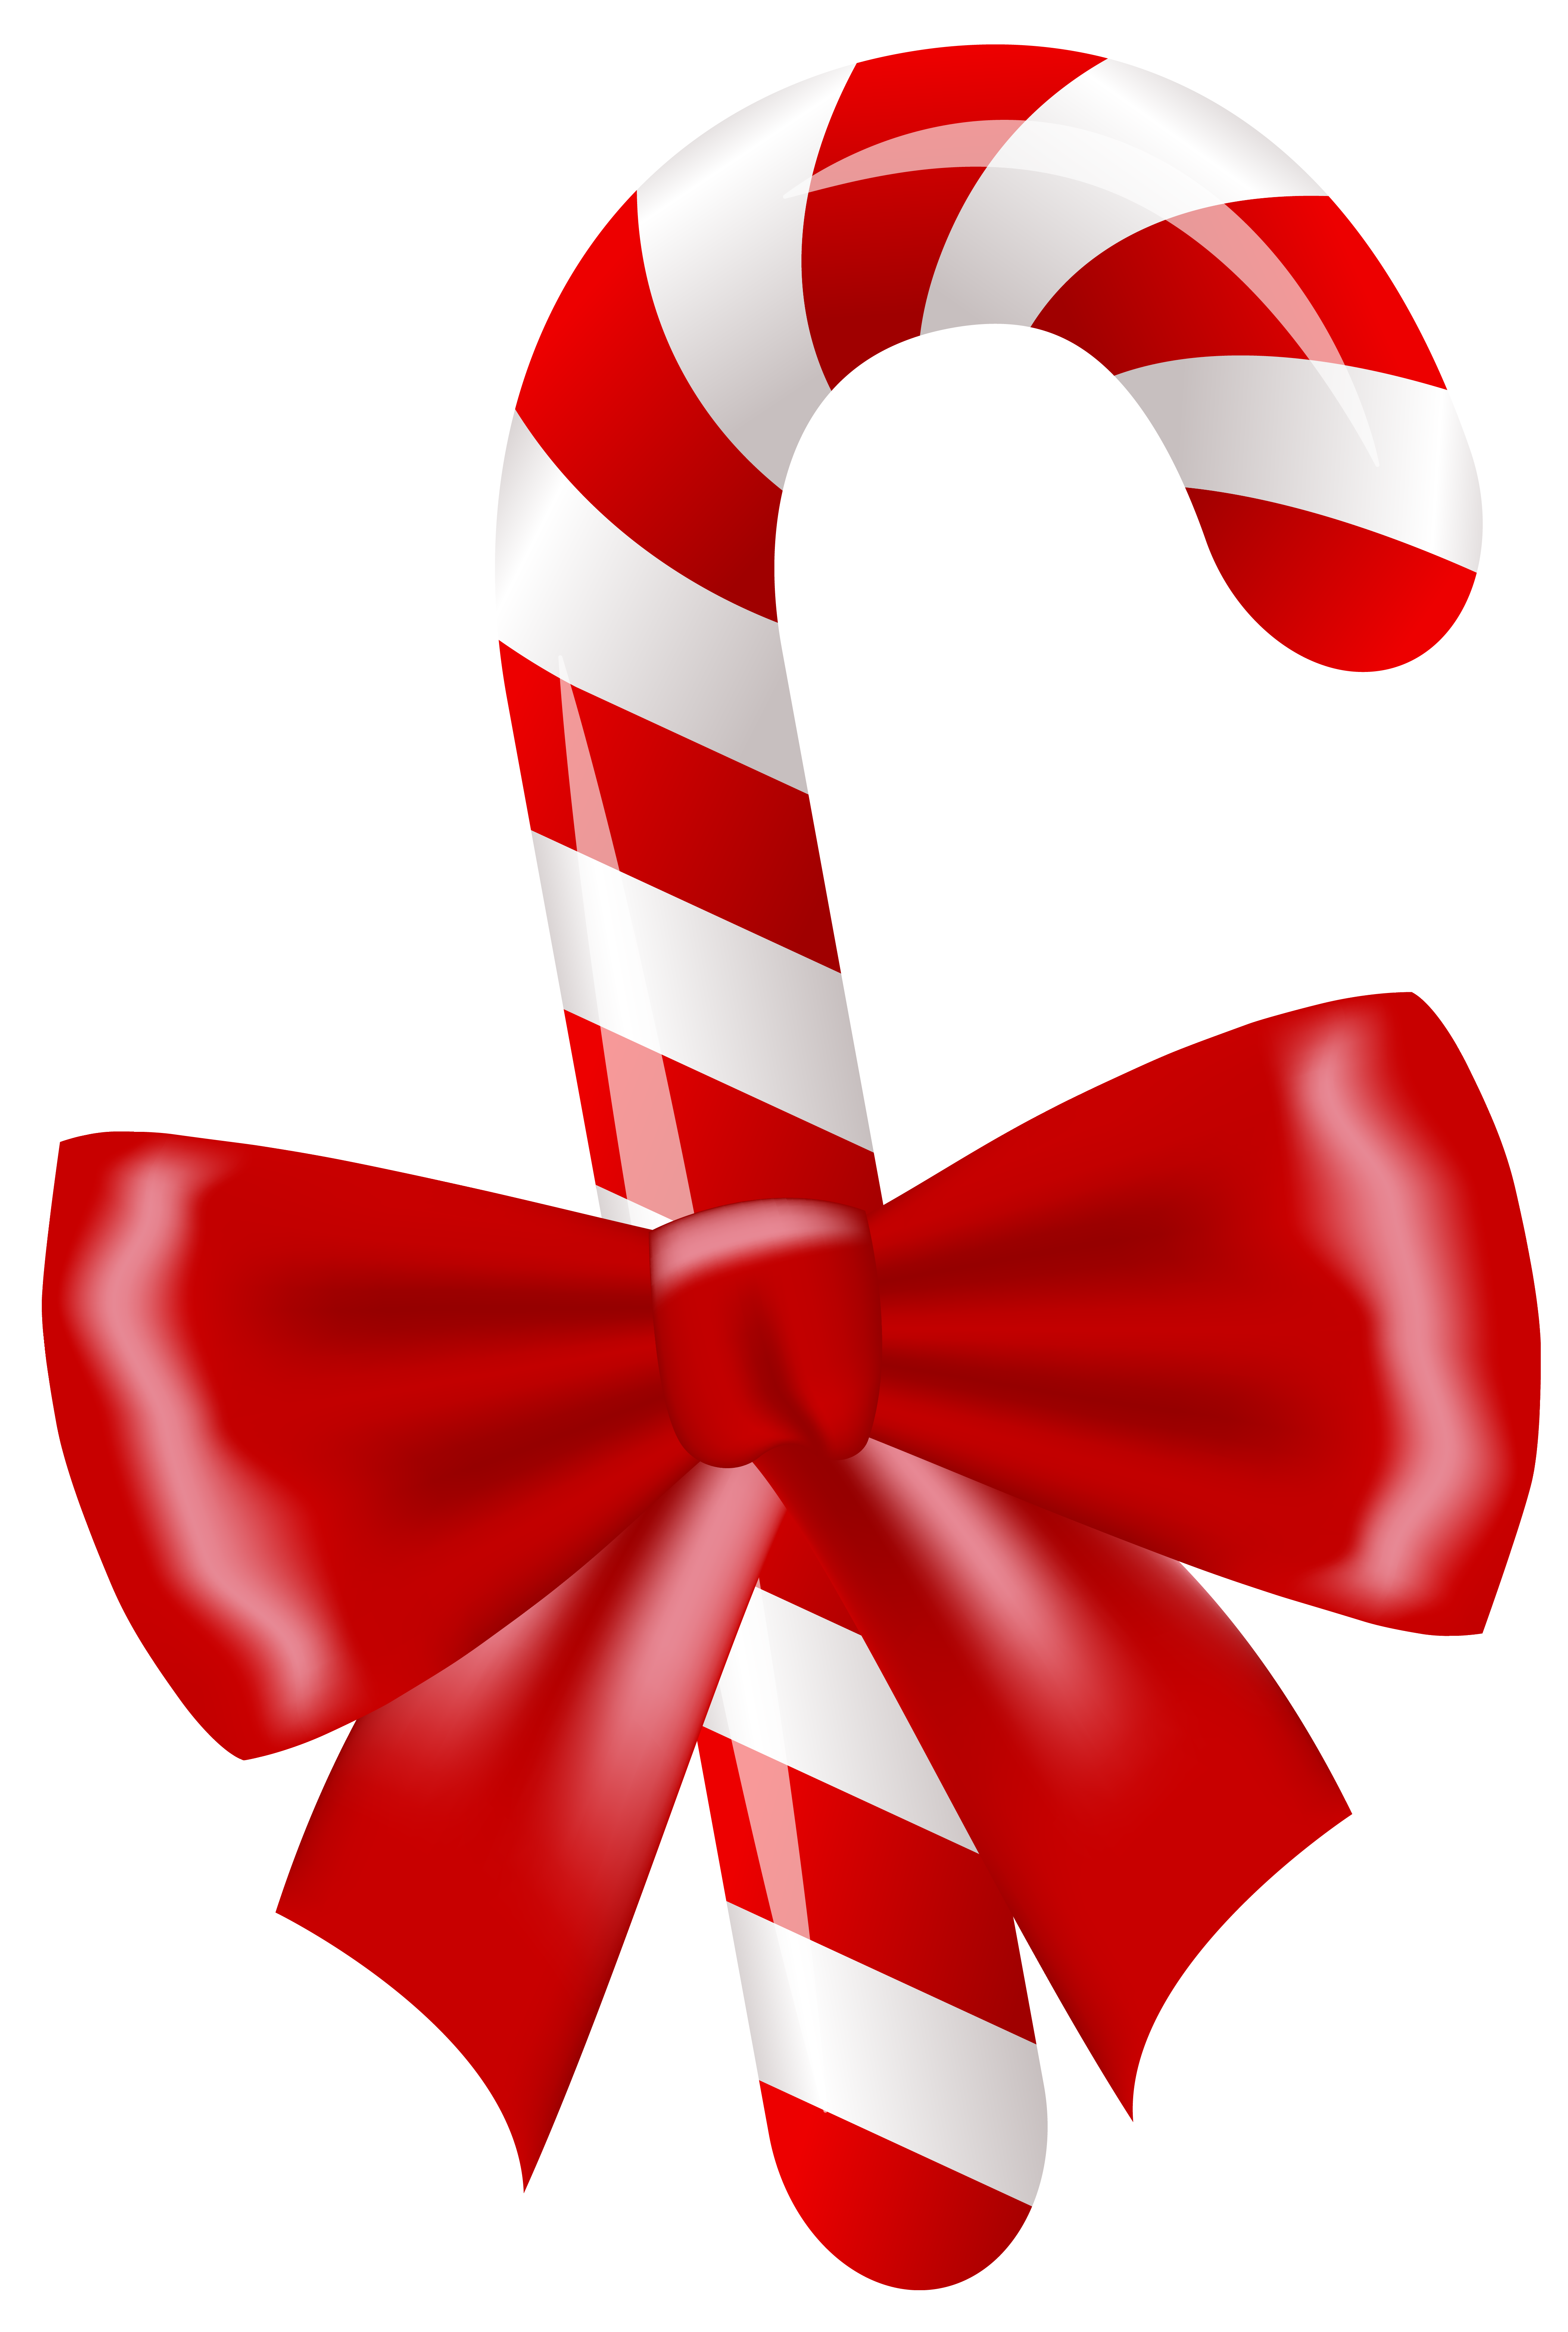 svg free library Candy merry christmas free. Cane clipart simple walking.